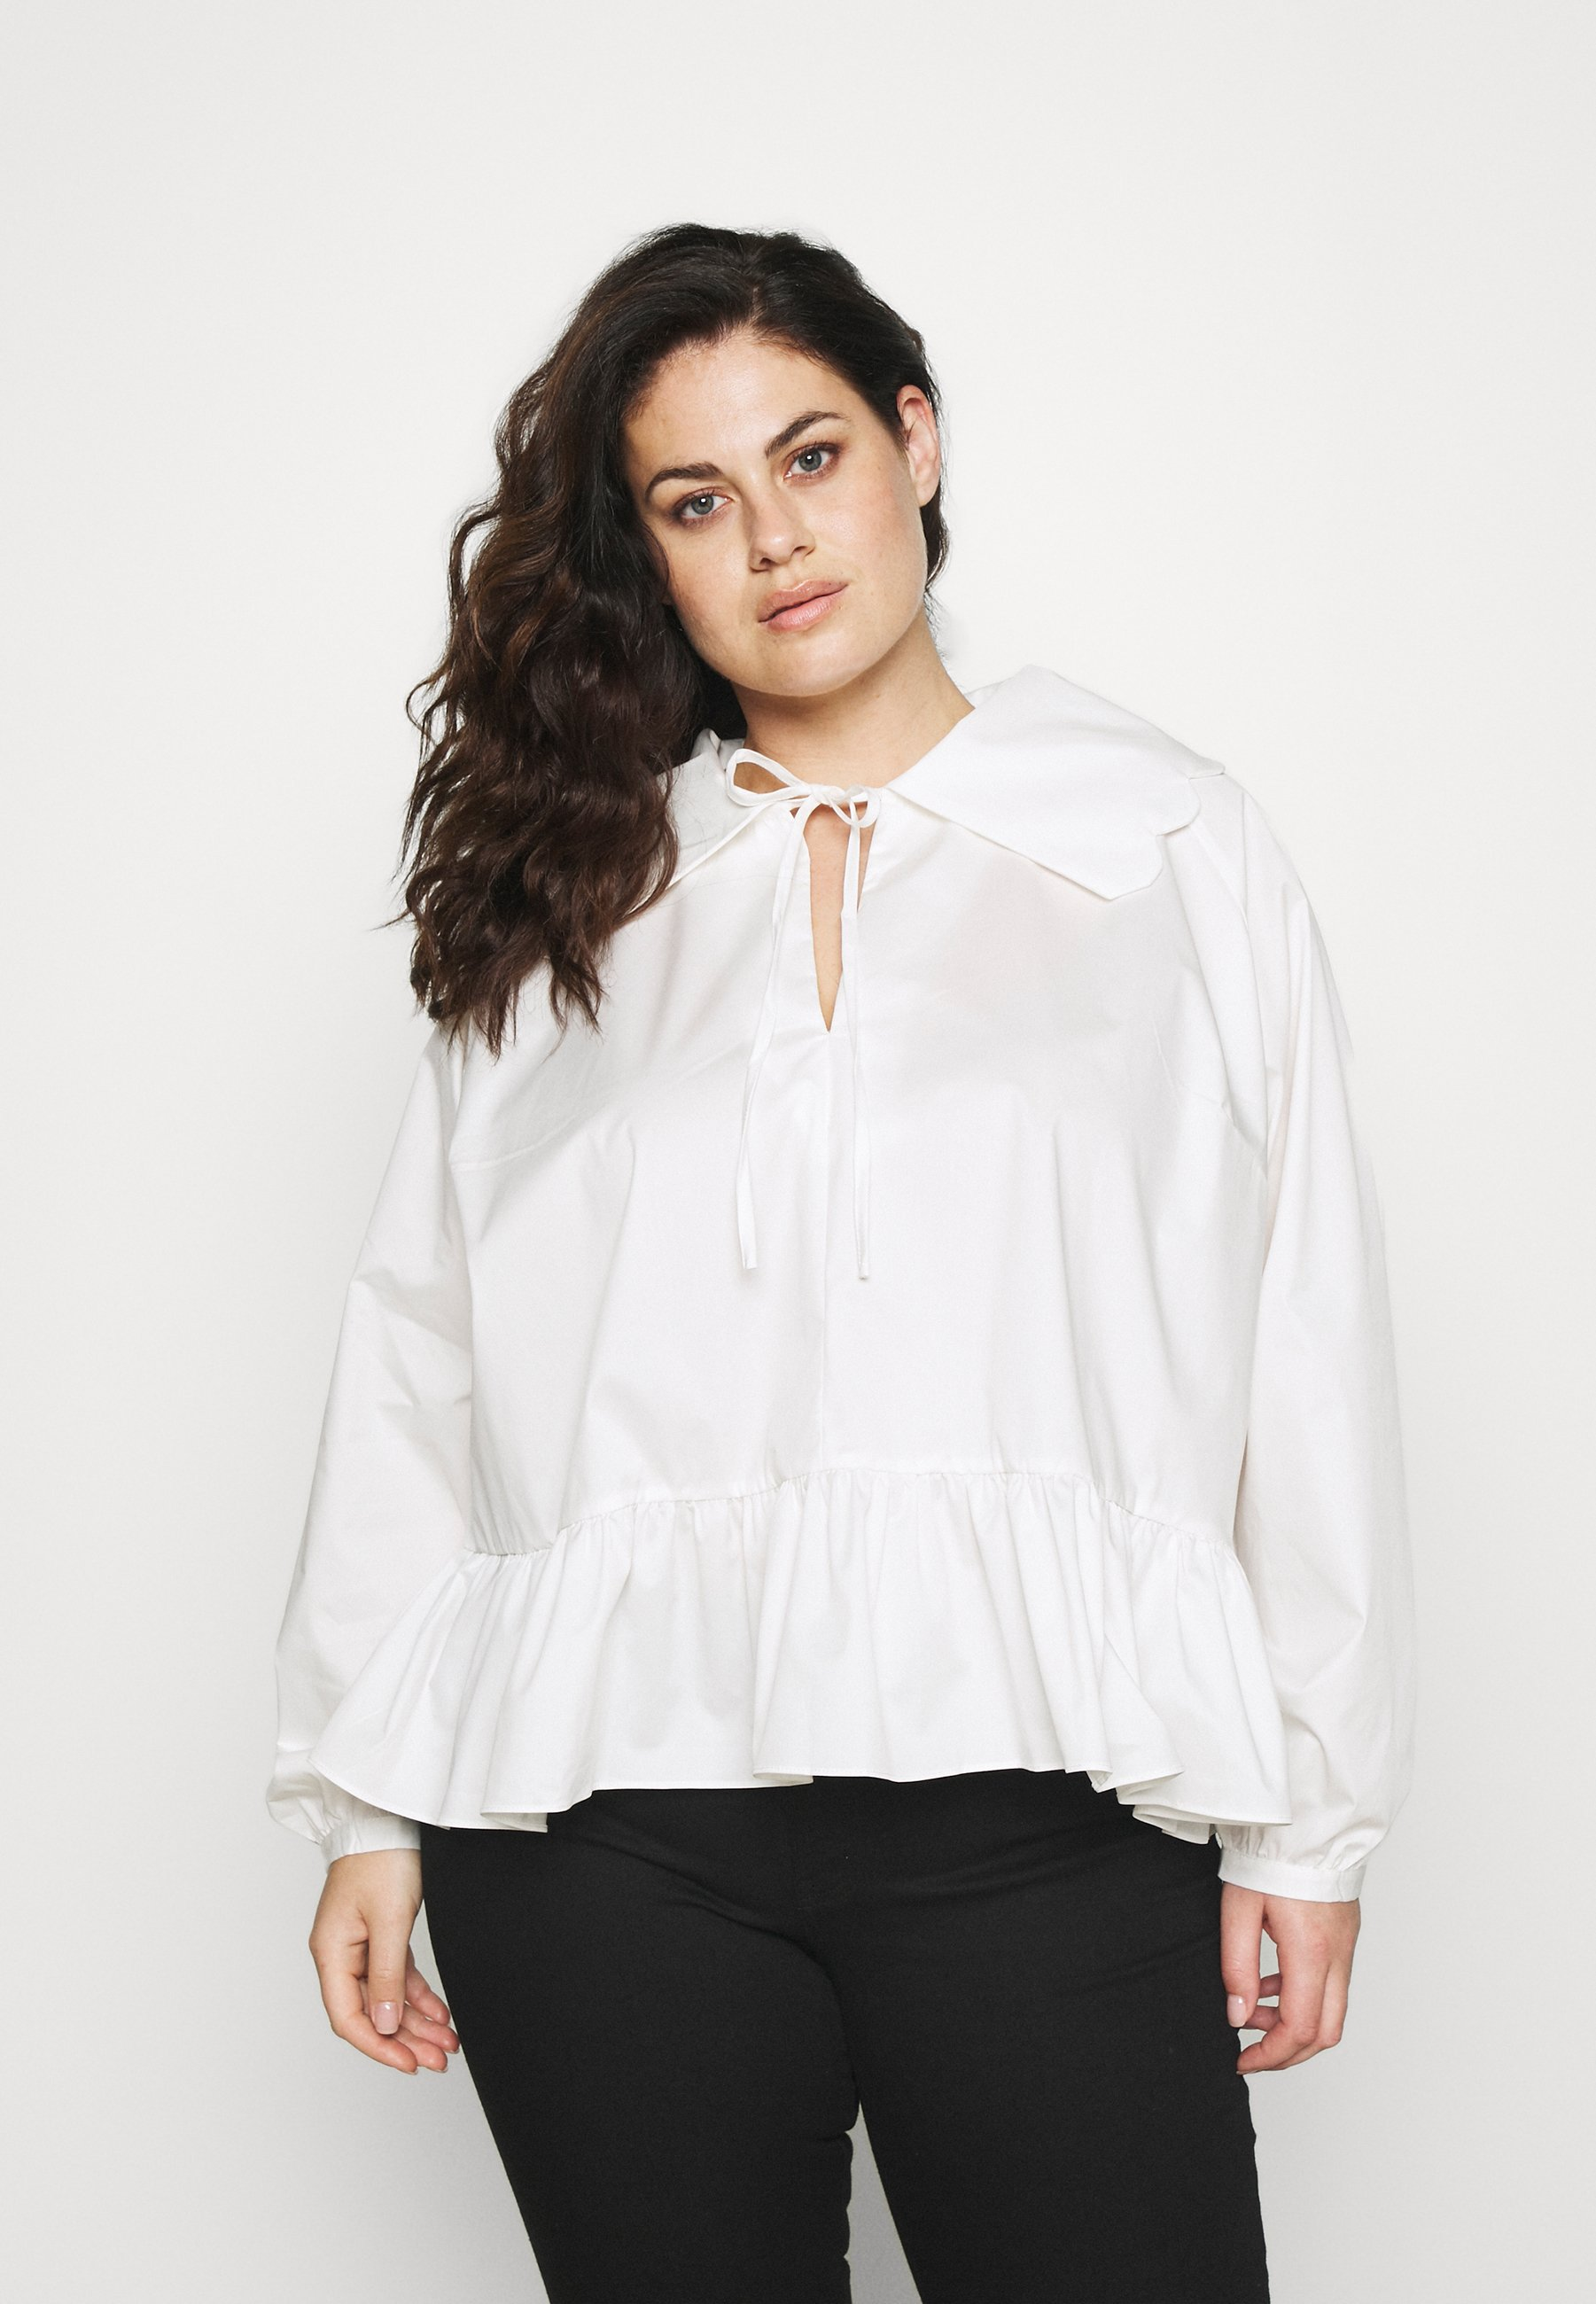 Women BABYDOLL BLOUSE WITH SCALLOP COLLAR FRONT NECK TIE DETAIL - Blouse